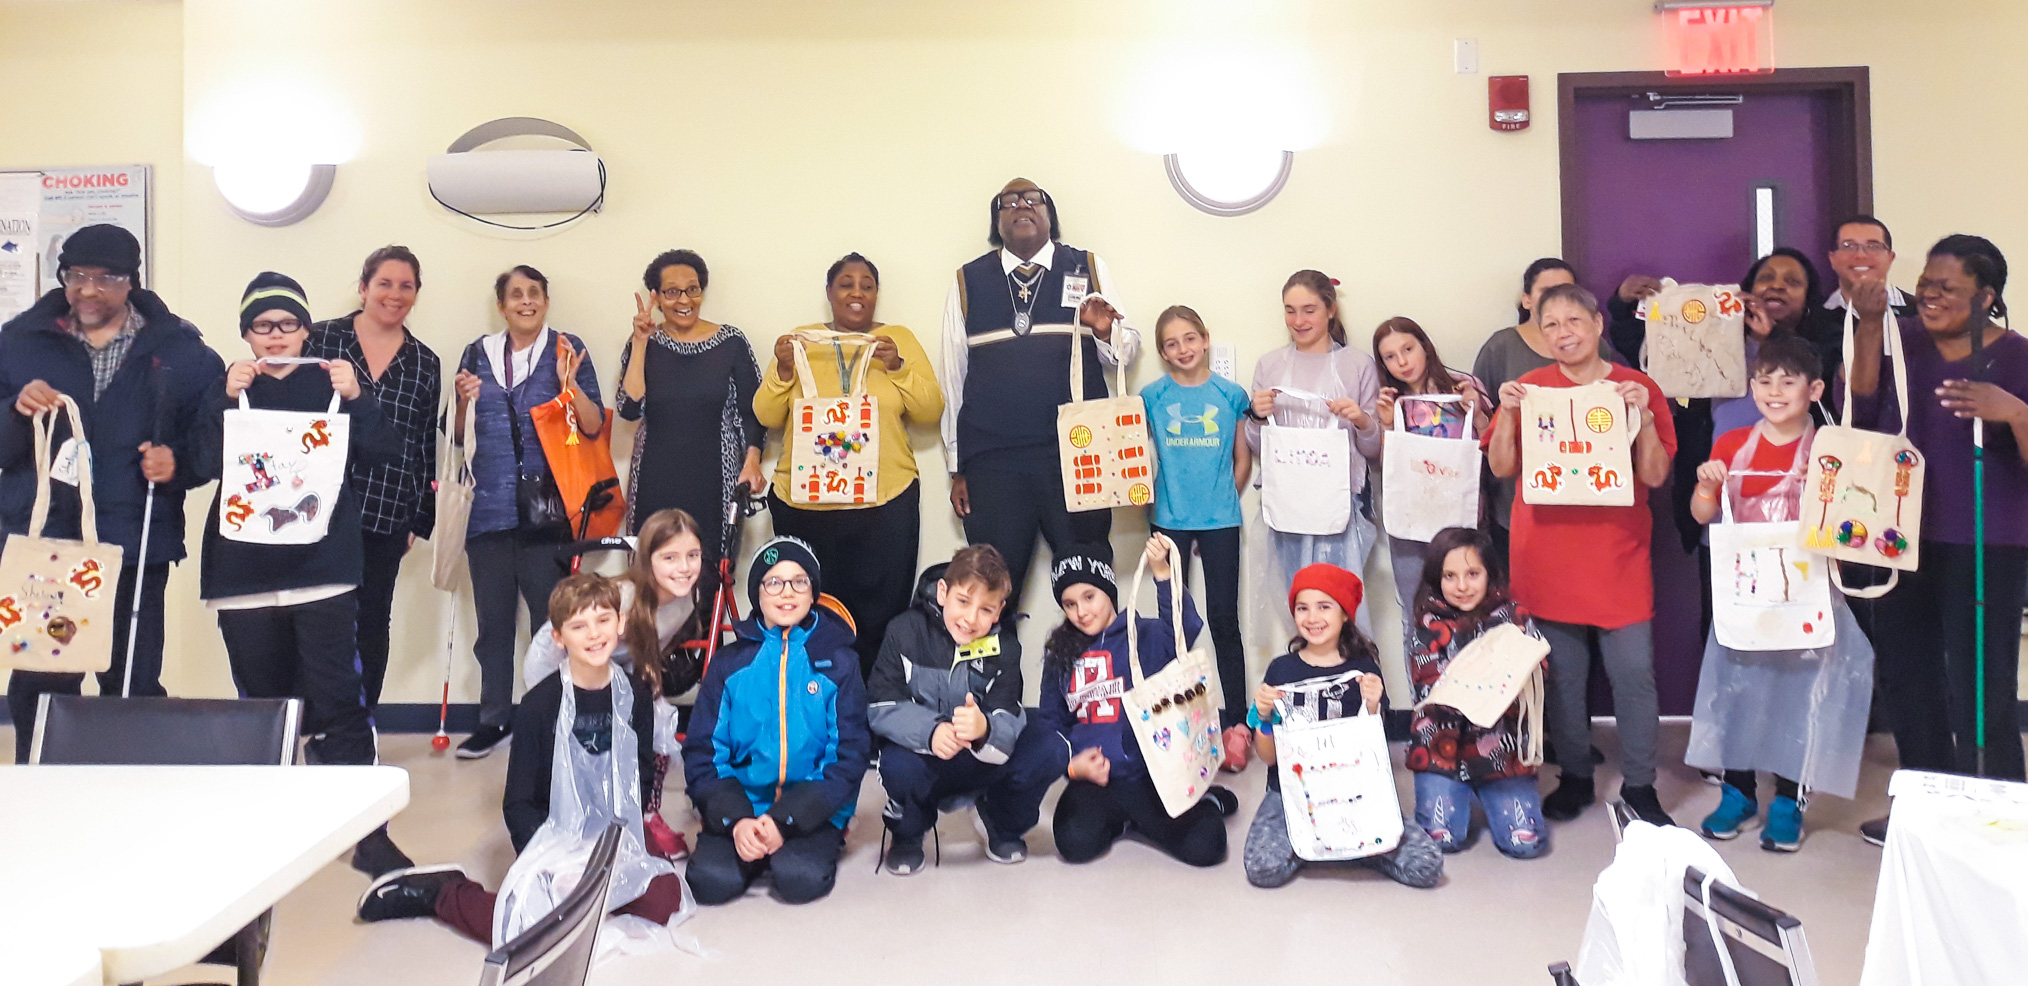 A group of students, older adults, and VISIONS staff stand together holding up tote bags they worked together to design.